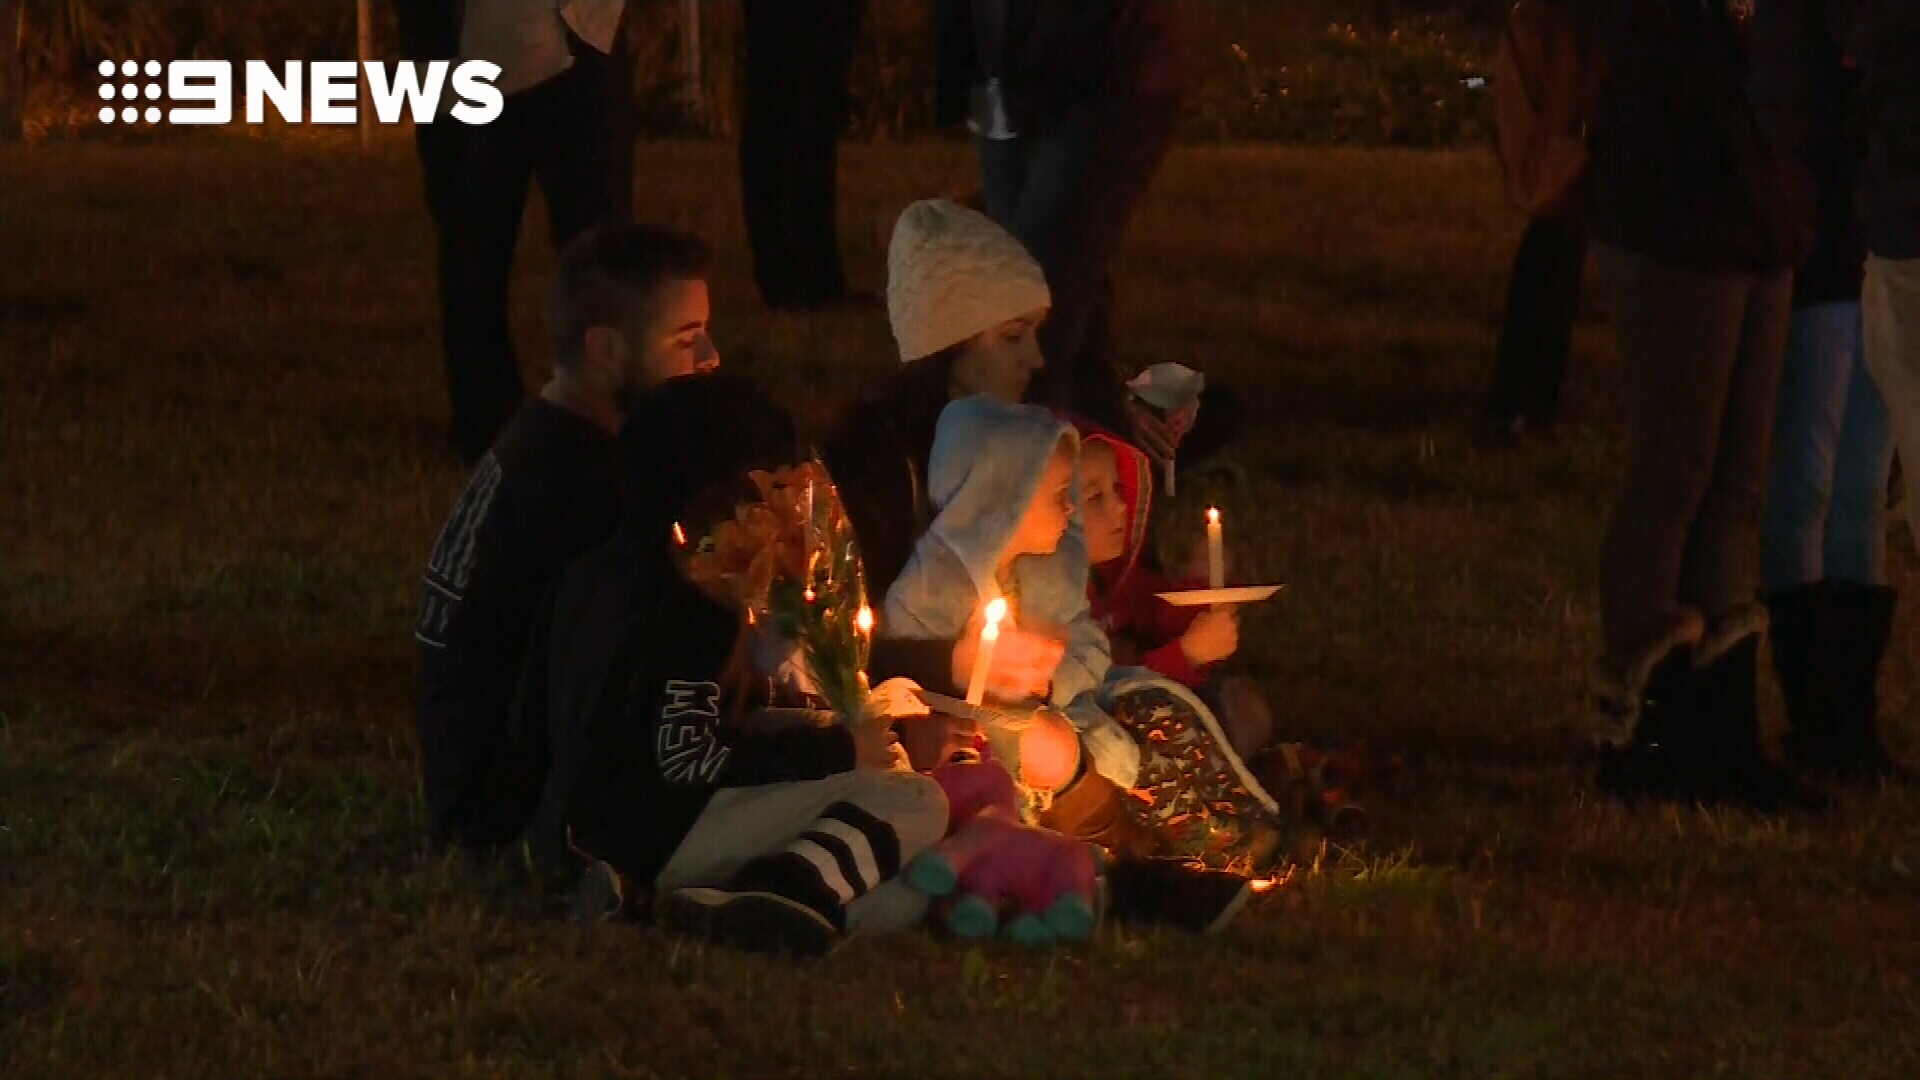 Community mourns six-year-old killed in car accident